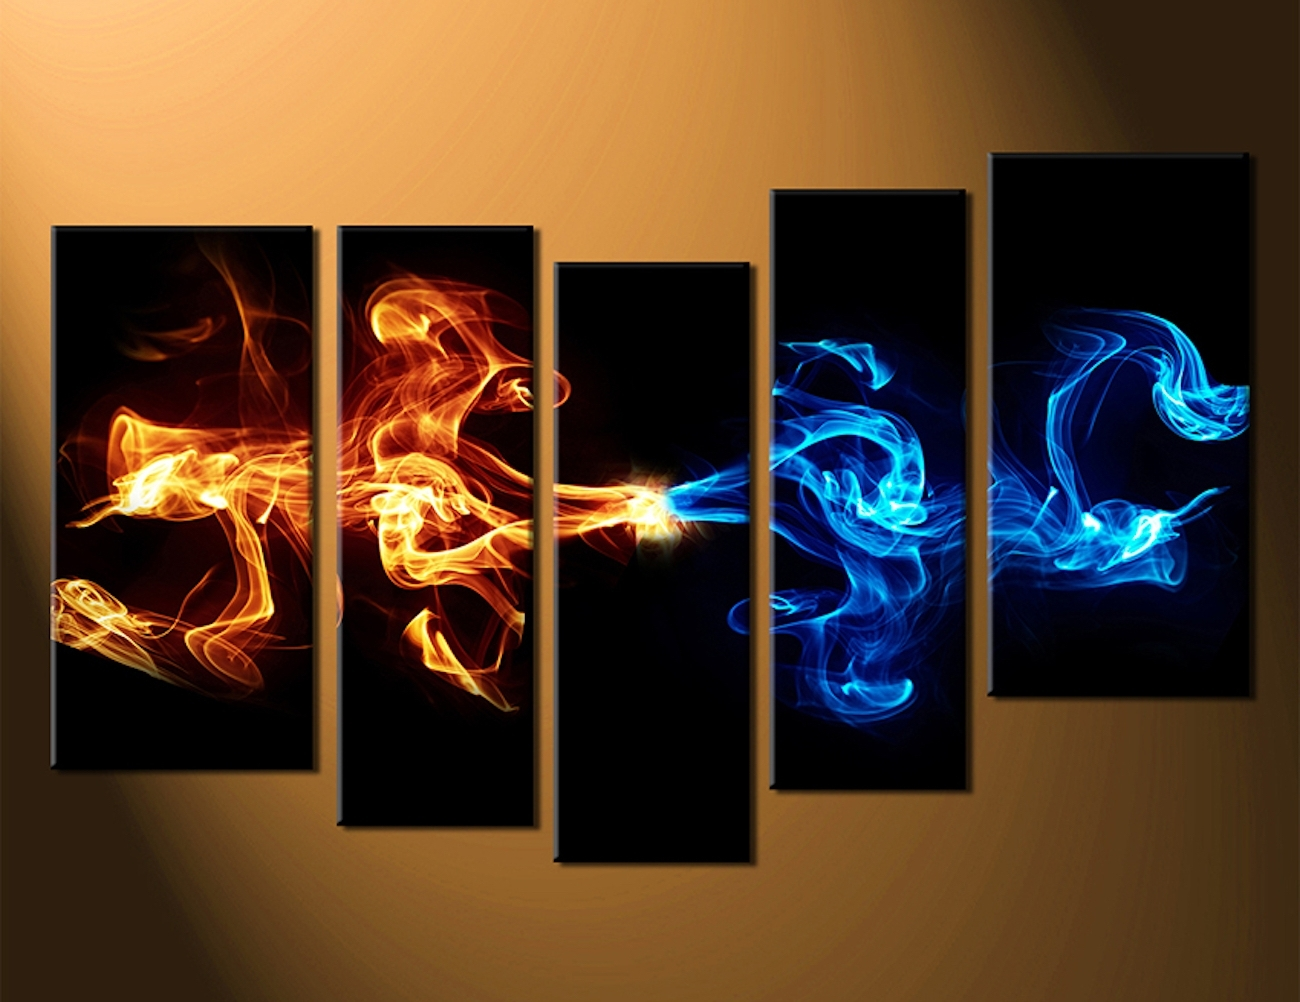 Widely Used Abstract 5 Piece Smoke Canvas Wall Art » Gadget Flow Within 5 Piece Wall Art (View 15 of 15)